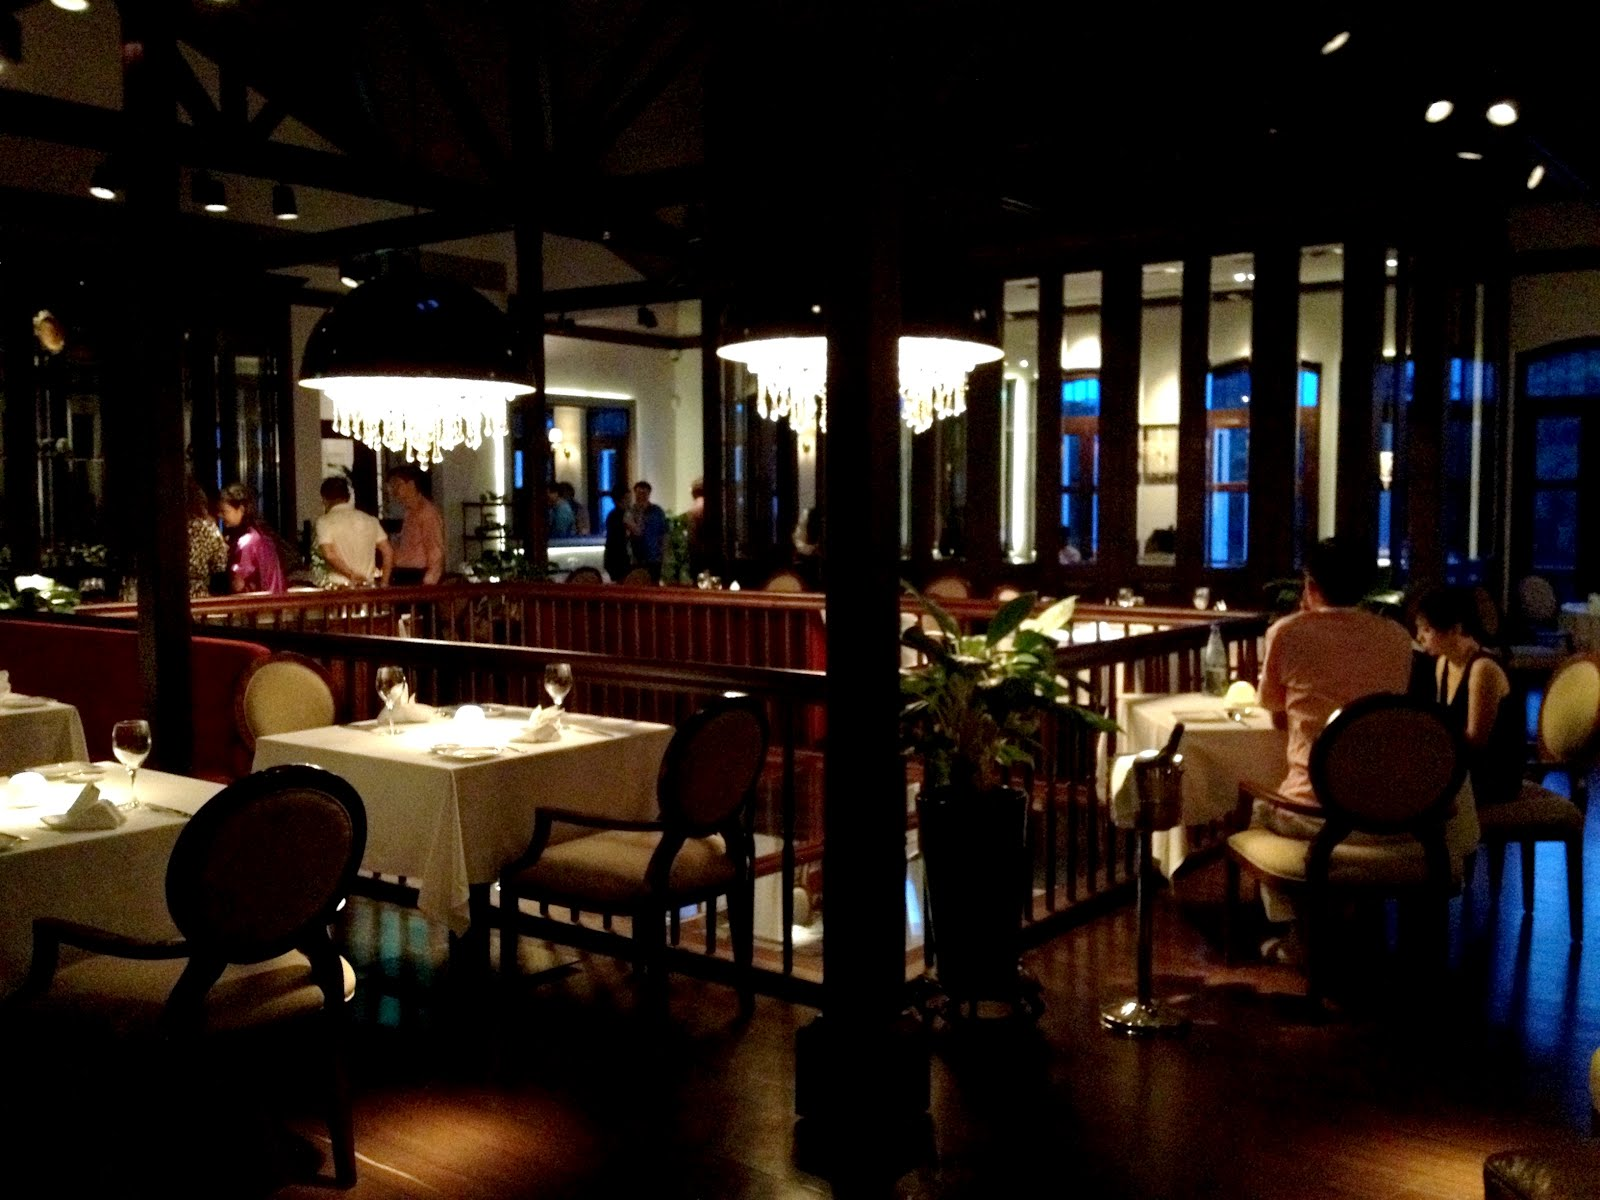 Au jardin restaurant singapore au jardin by les amis 20 for 1146 table doesn t exist